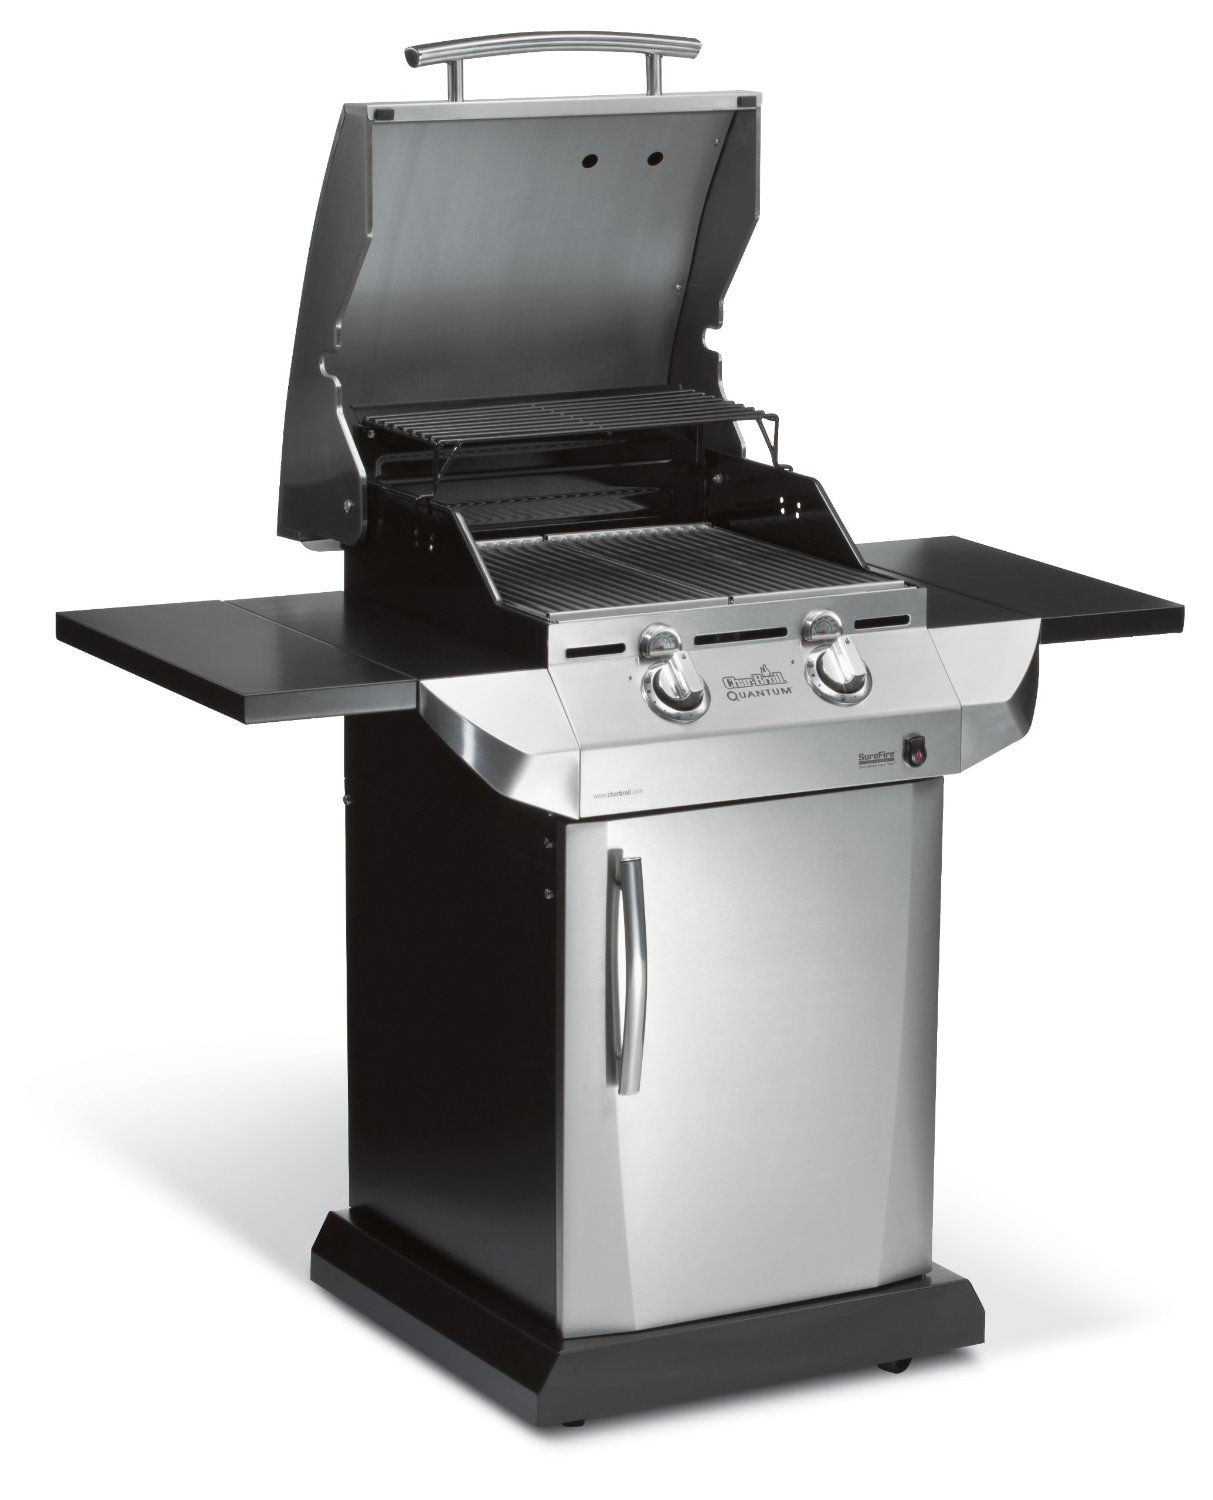 CharBroil TRU Infrared Urban Gas Grill with Folding Side